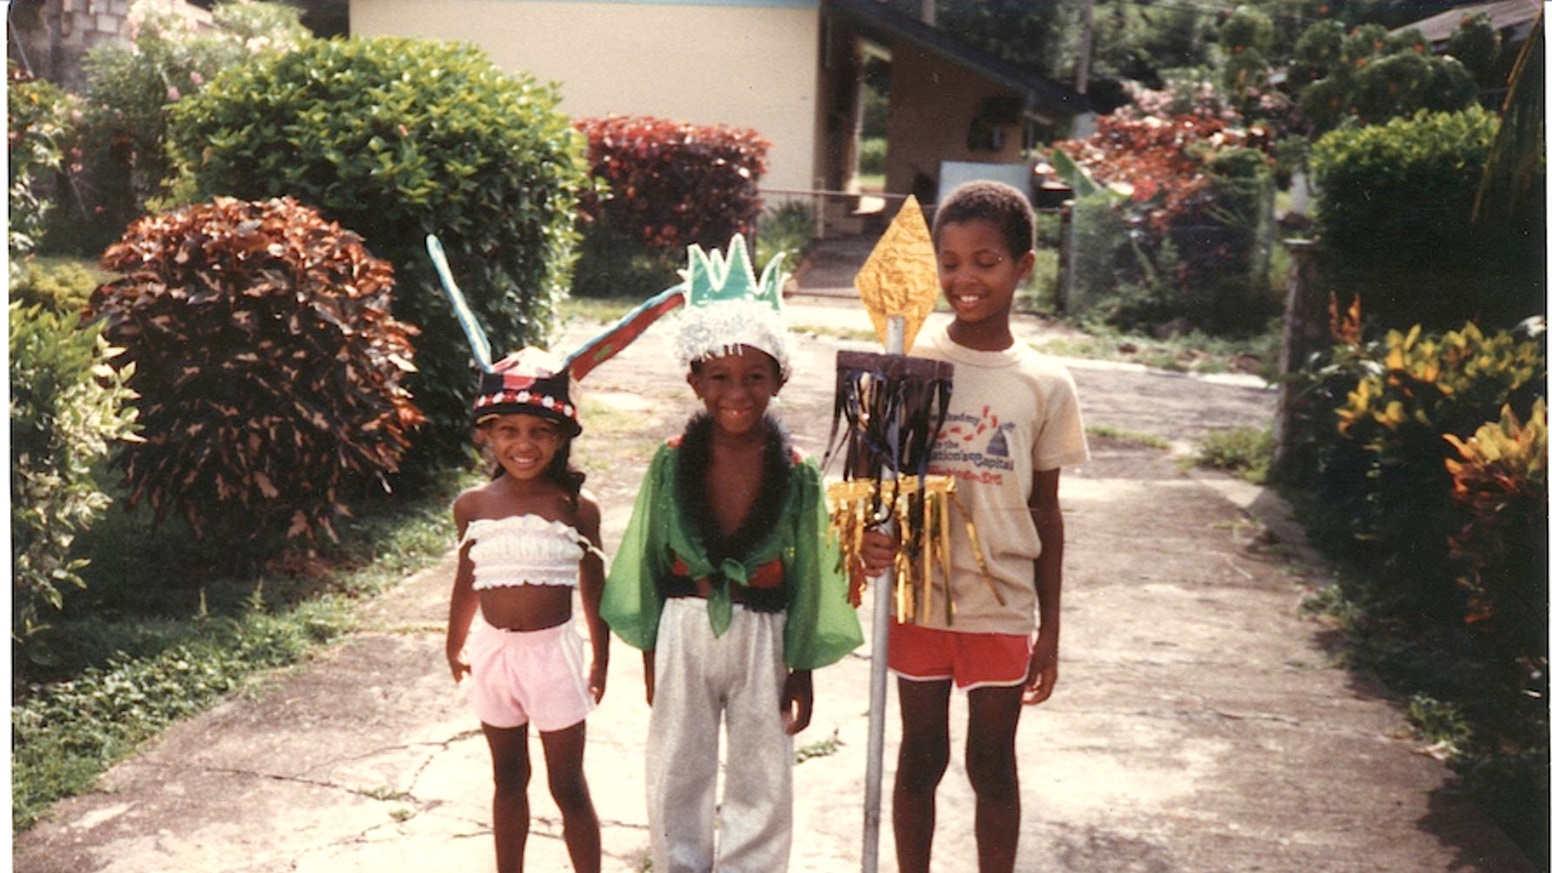 In 1983 my mother moved my sister and me from our home in California to join the Grenada Revolution. Our lives were changed forever!